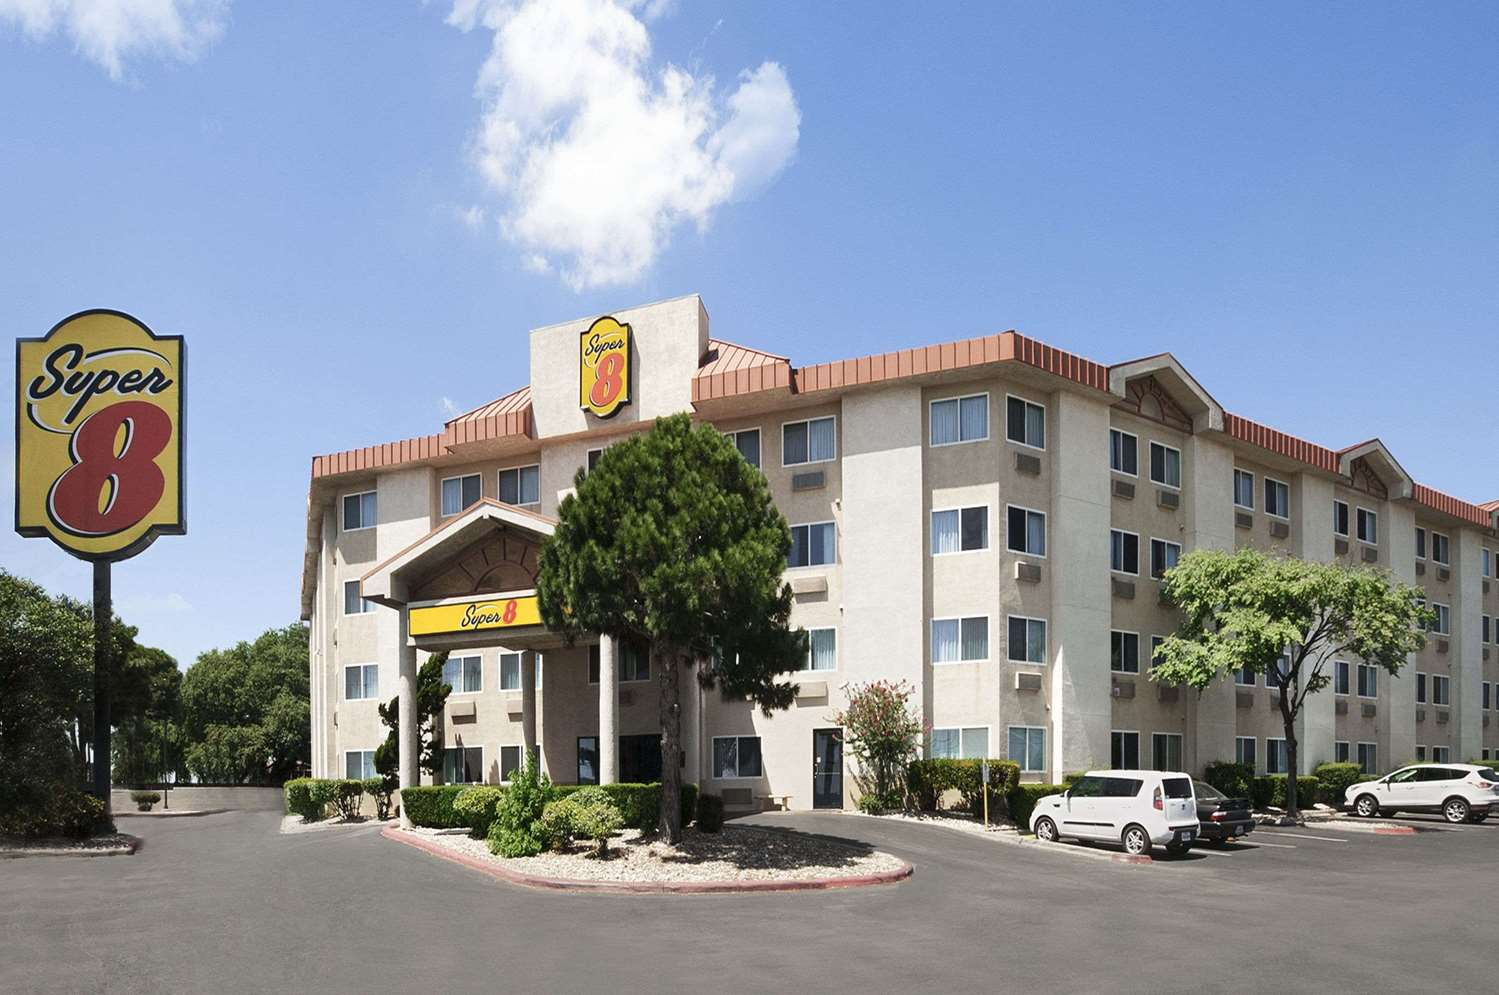 Super 8 Hotel North Austin